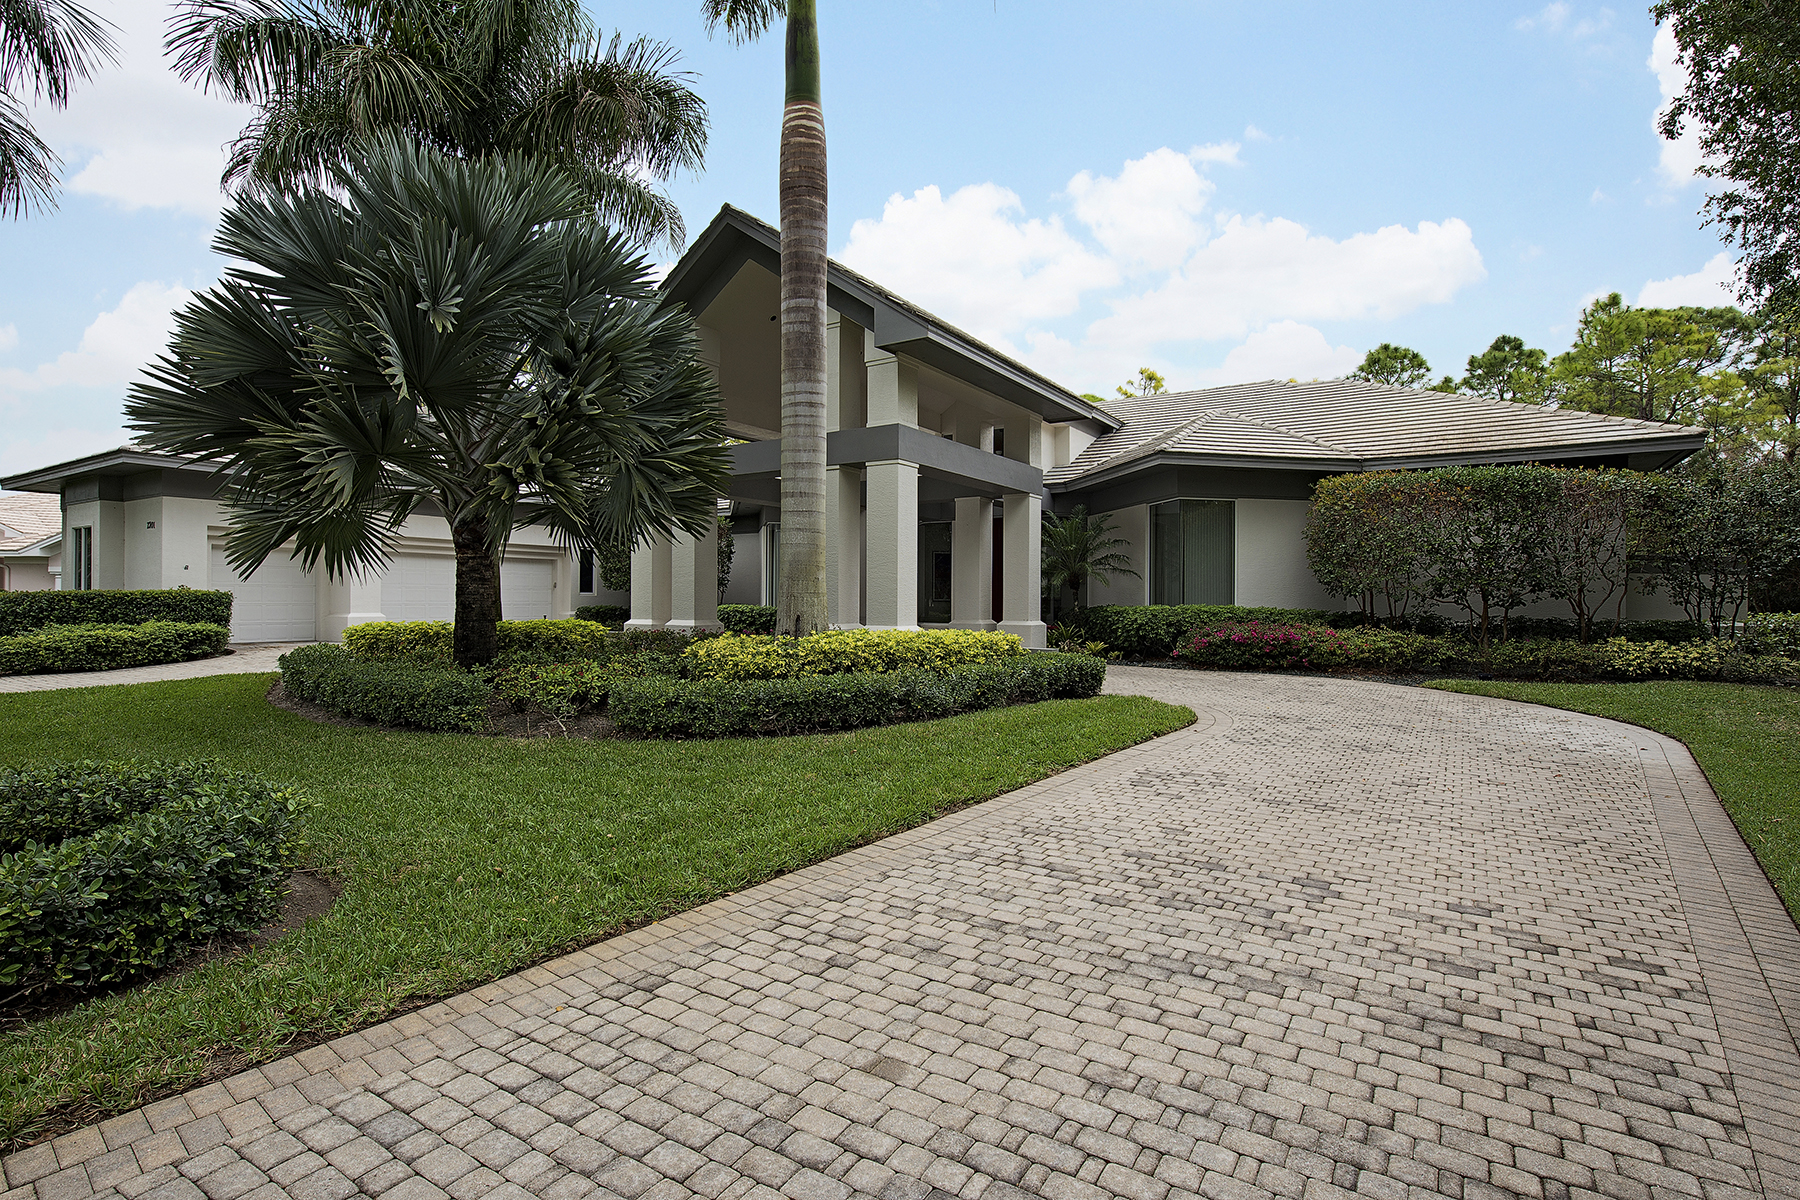 Single Family Home for Sale at 2701 Buckthorn Way , Naples, FL 34105 2701 Buckthorn Way Naples, Florida 34105 United States